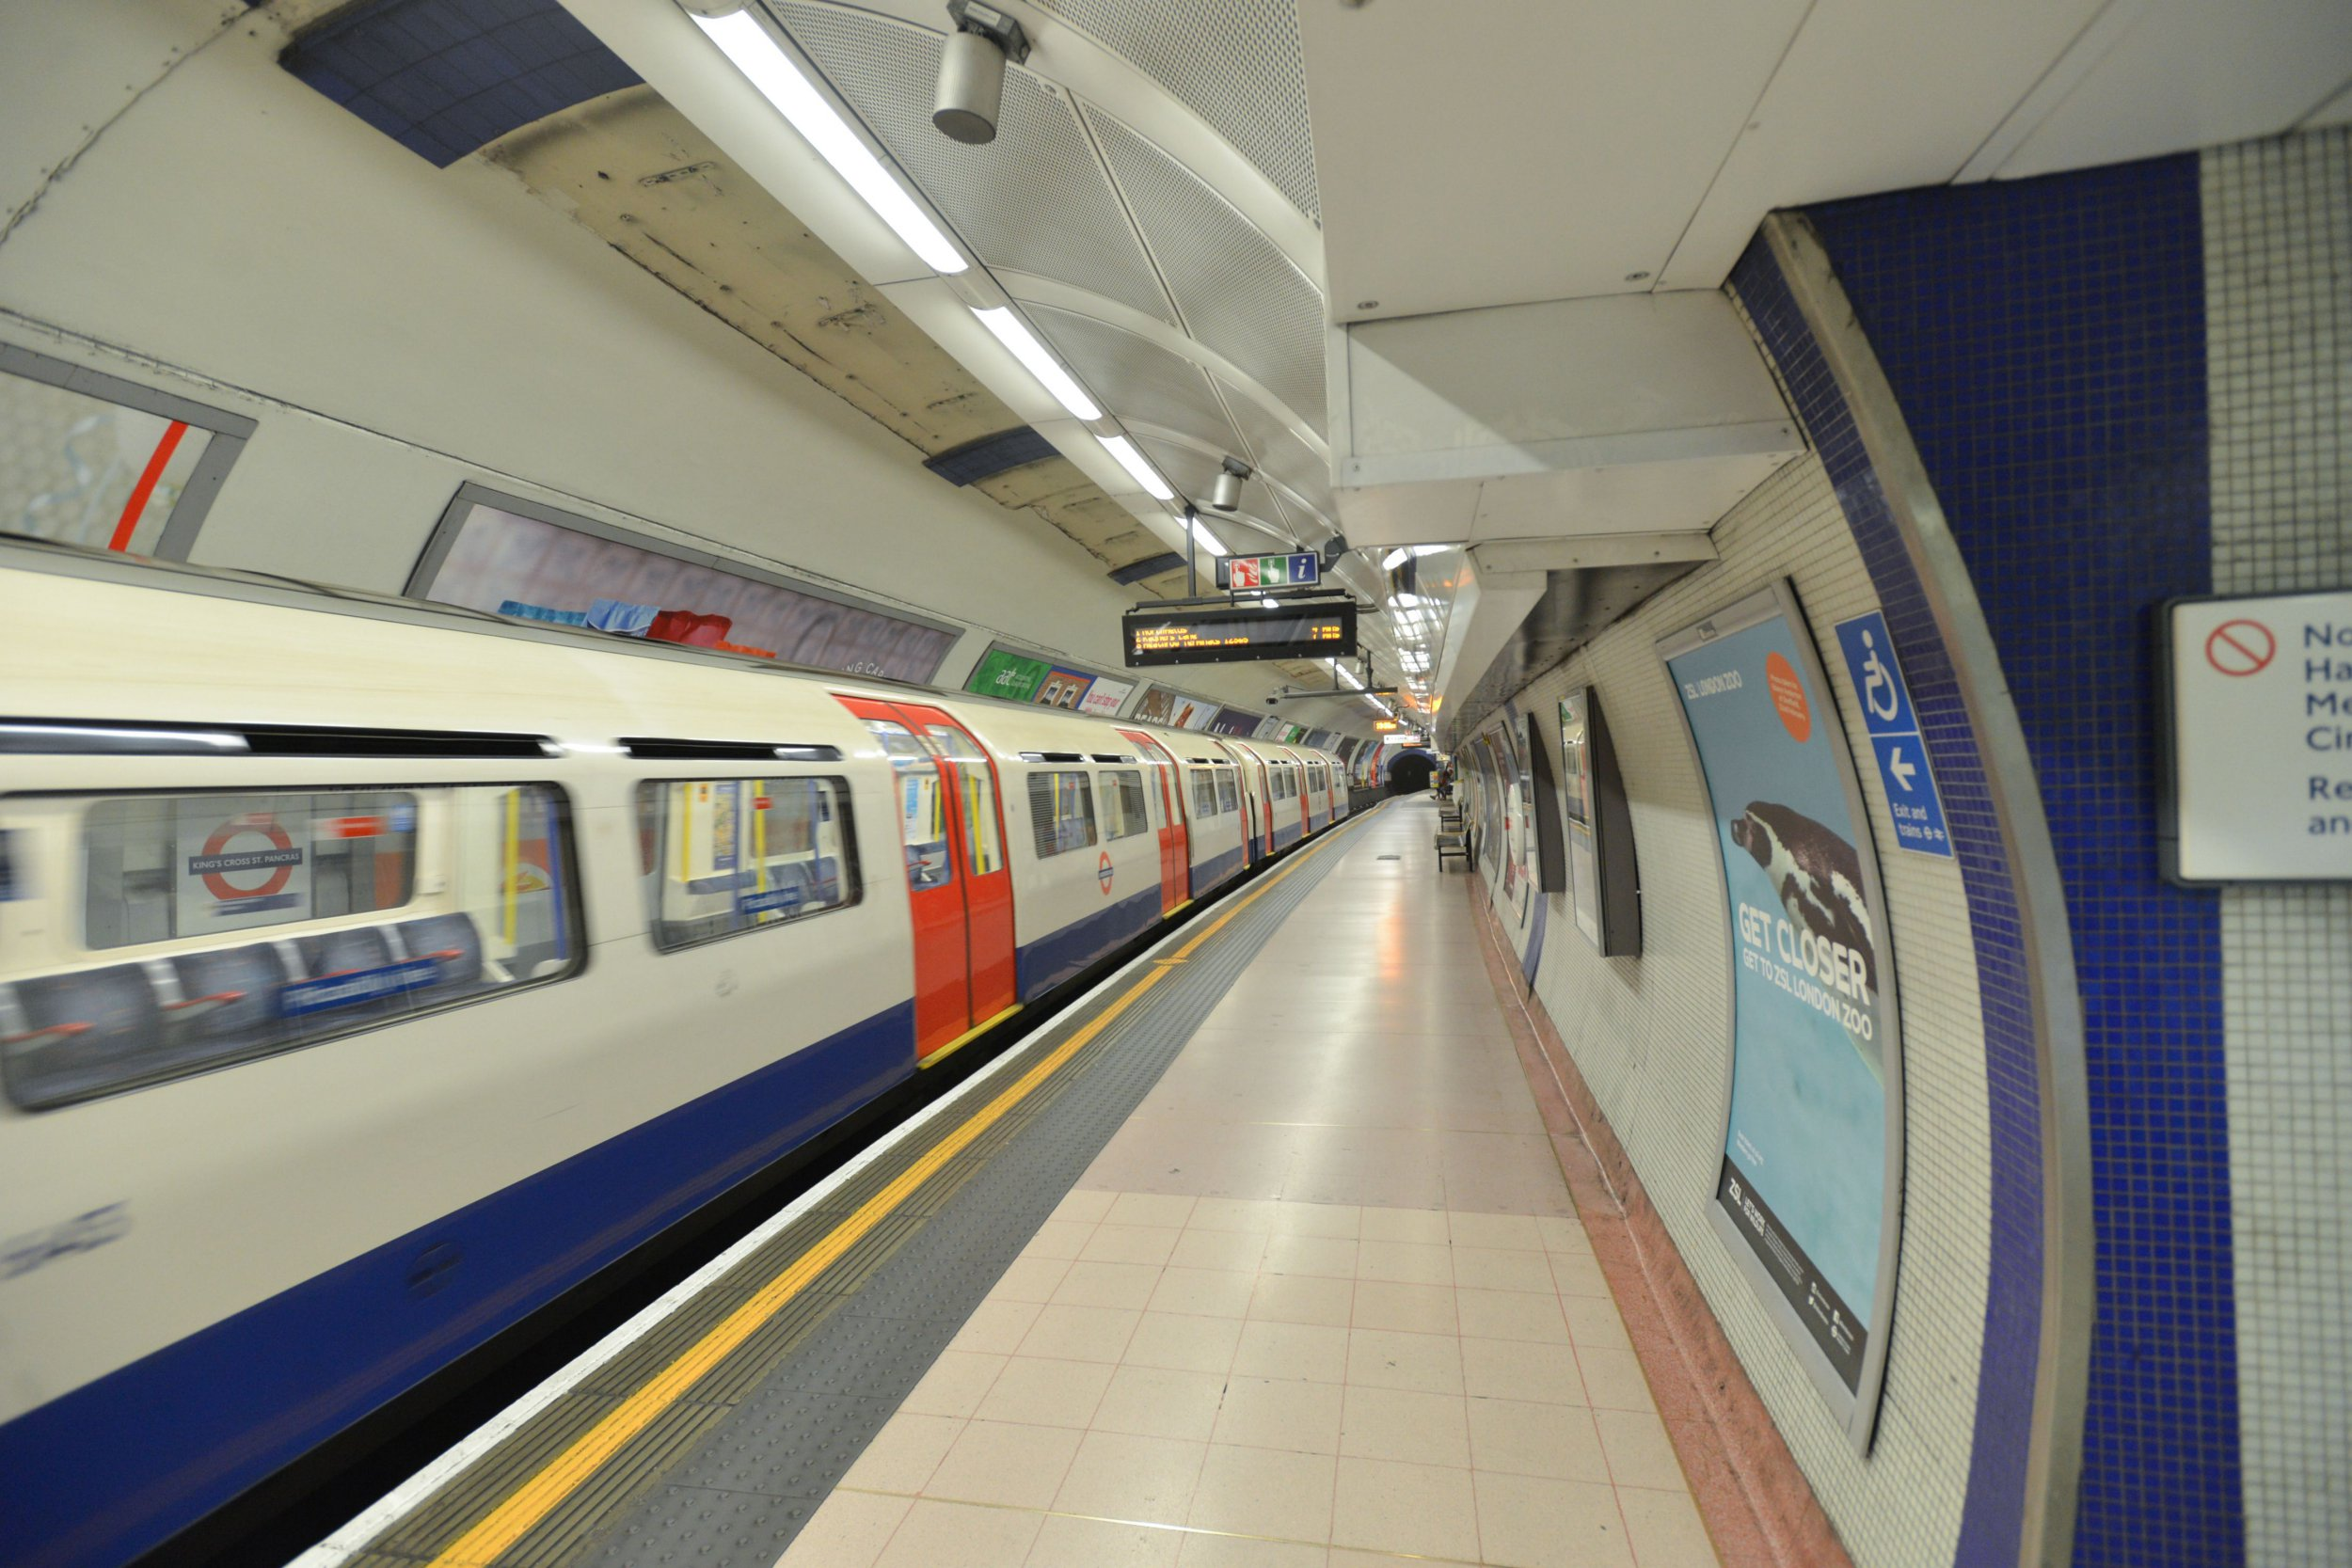 Mandatory Credit: Photo by Matthew Chattle/REX/Shutterstock (4929947r) Kings Cross Station Tube strike across London Underground network, Britain - 05 Aug 2015 Commuters start to leave at 4.30. The tube strike begins in London, with passengers warned that services will start to close from 18.30.